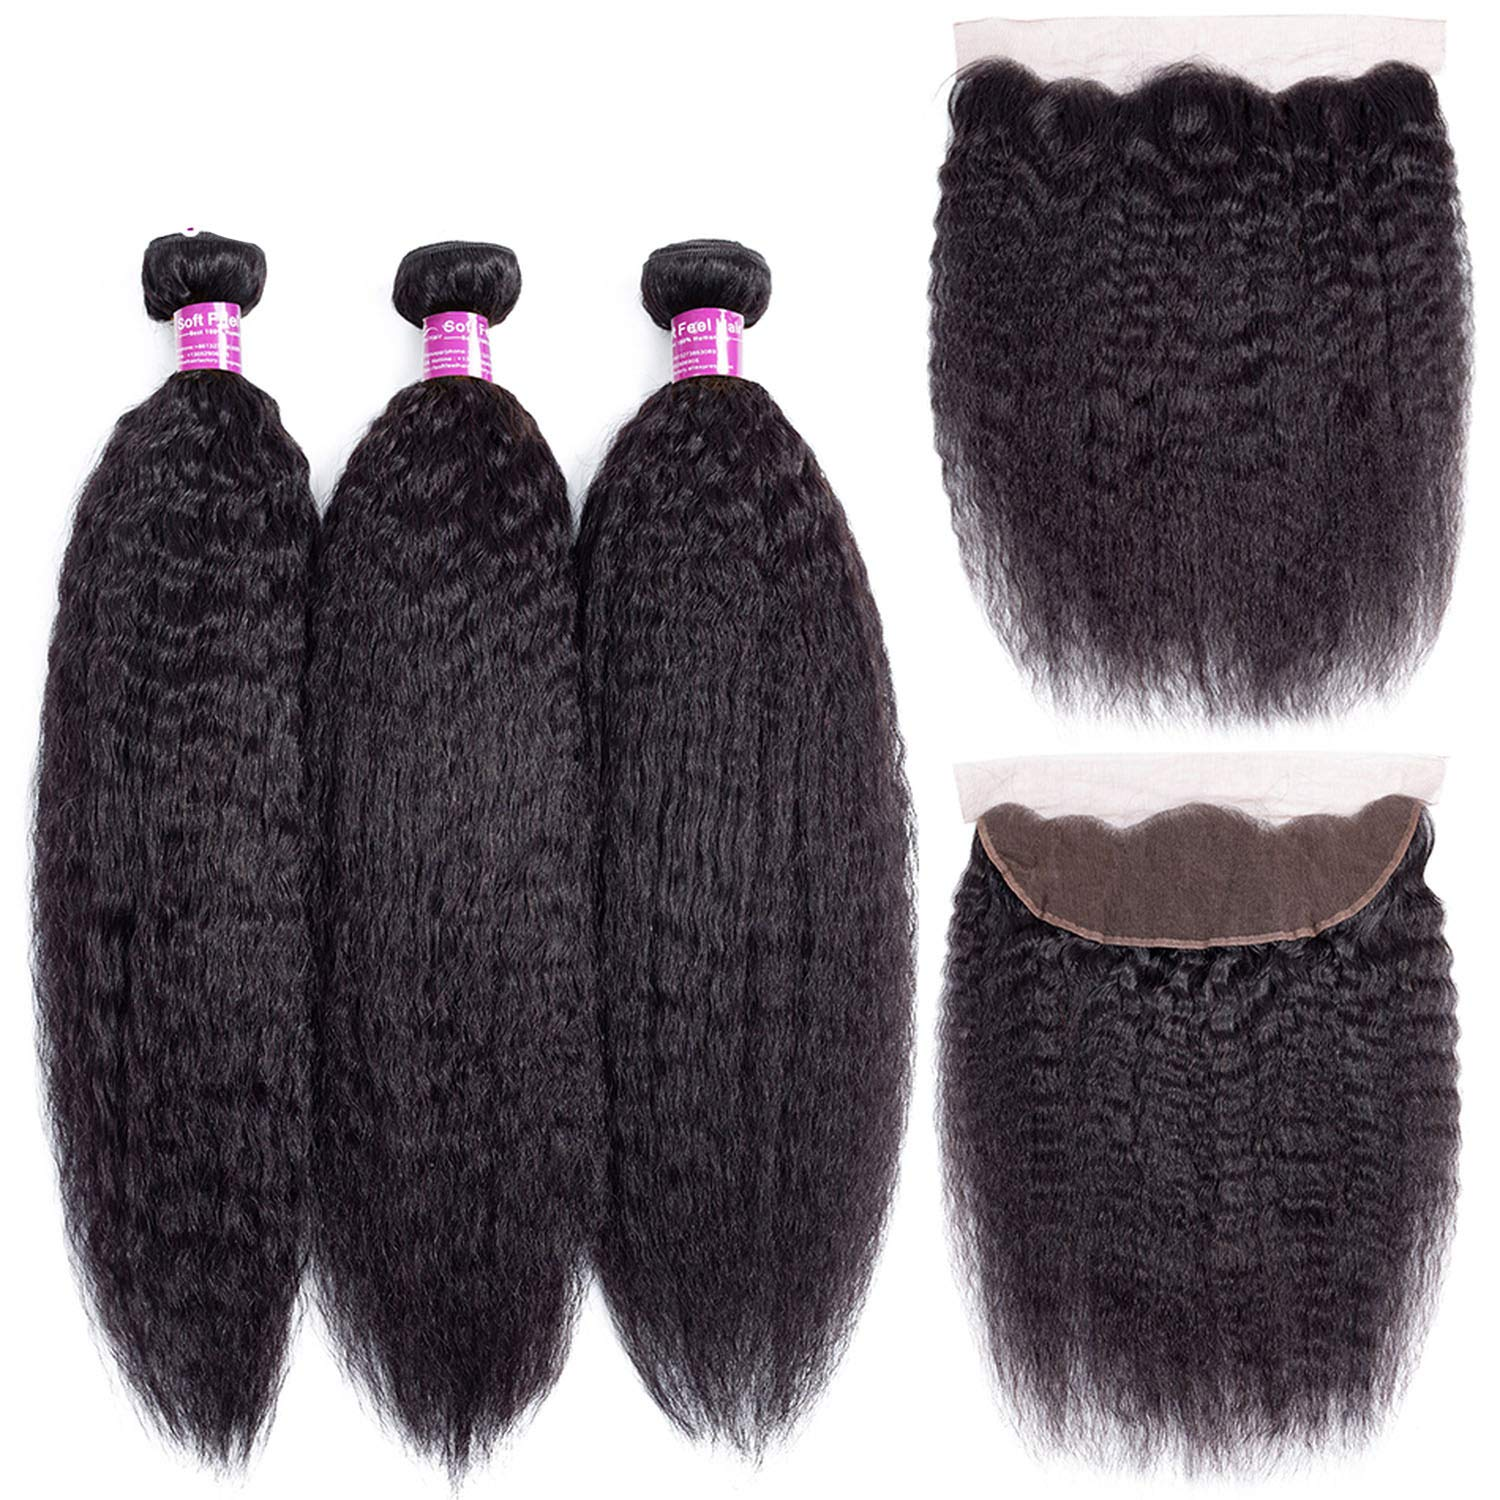 SHILINWEI Brazilian Kinky Straight Hair With Frontal Human Hair Bundles With Frontal Remy Lace Frontal Closure With Bundles,24 26 28 & Closure20,Natural Color,Three Part